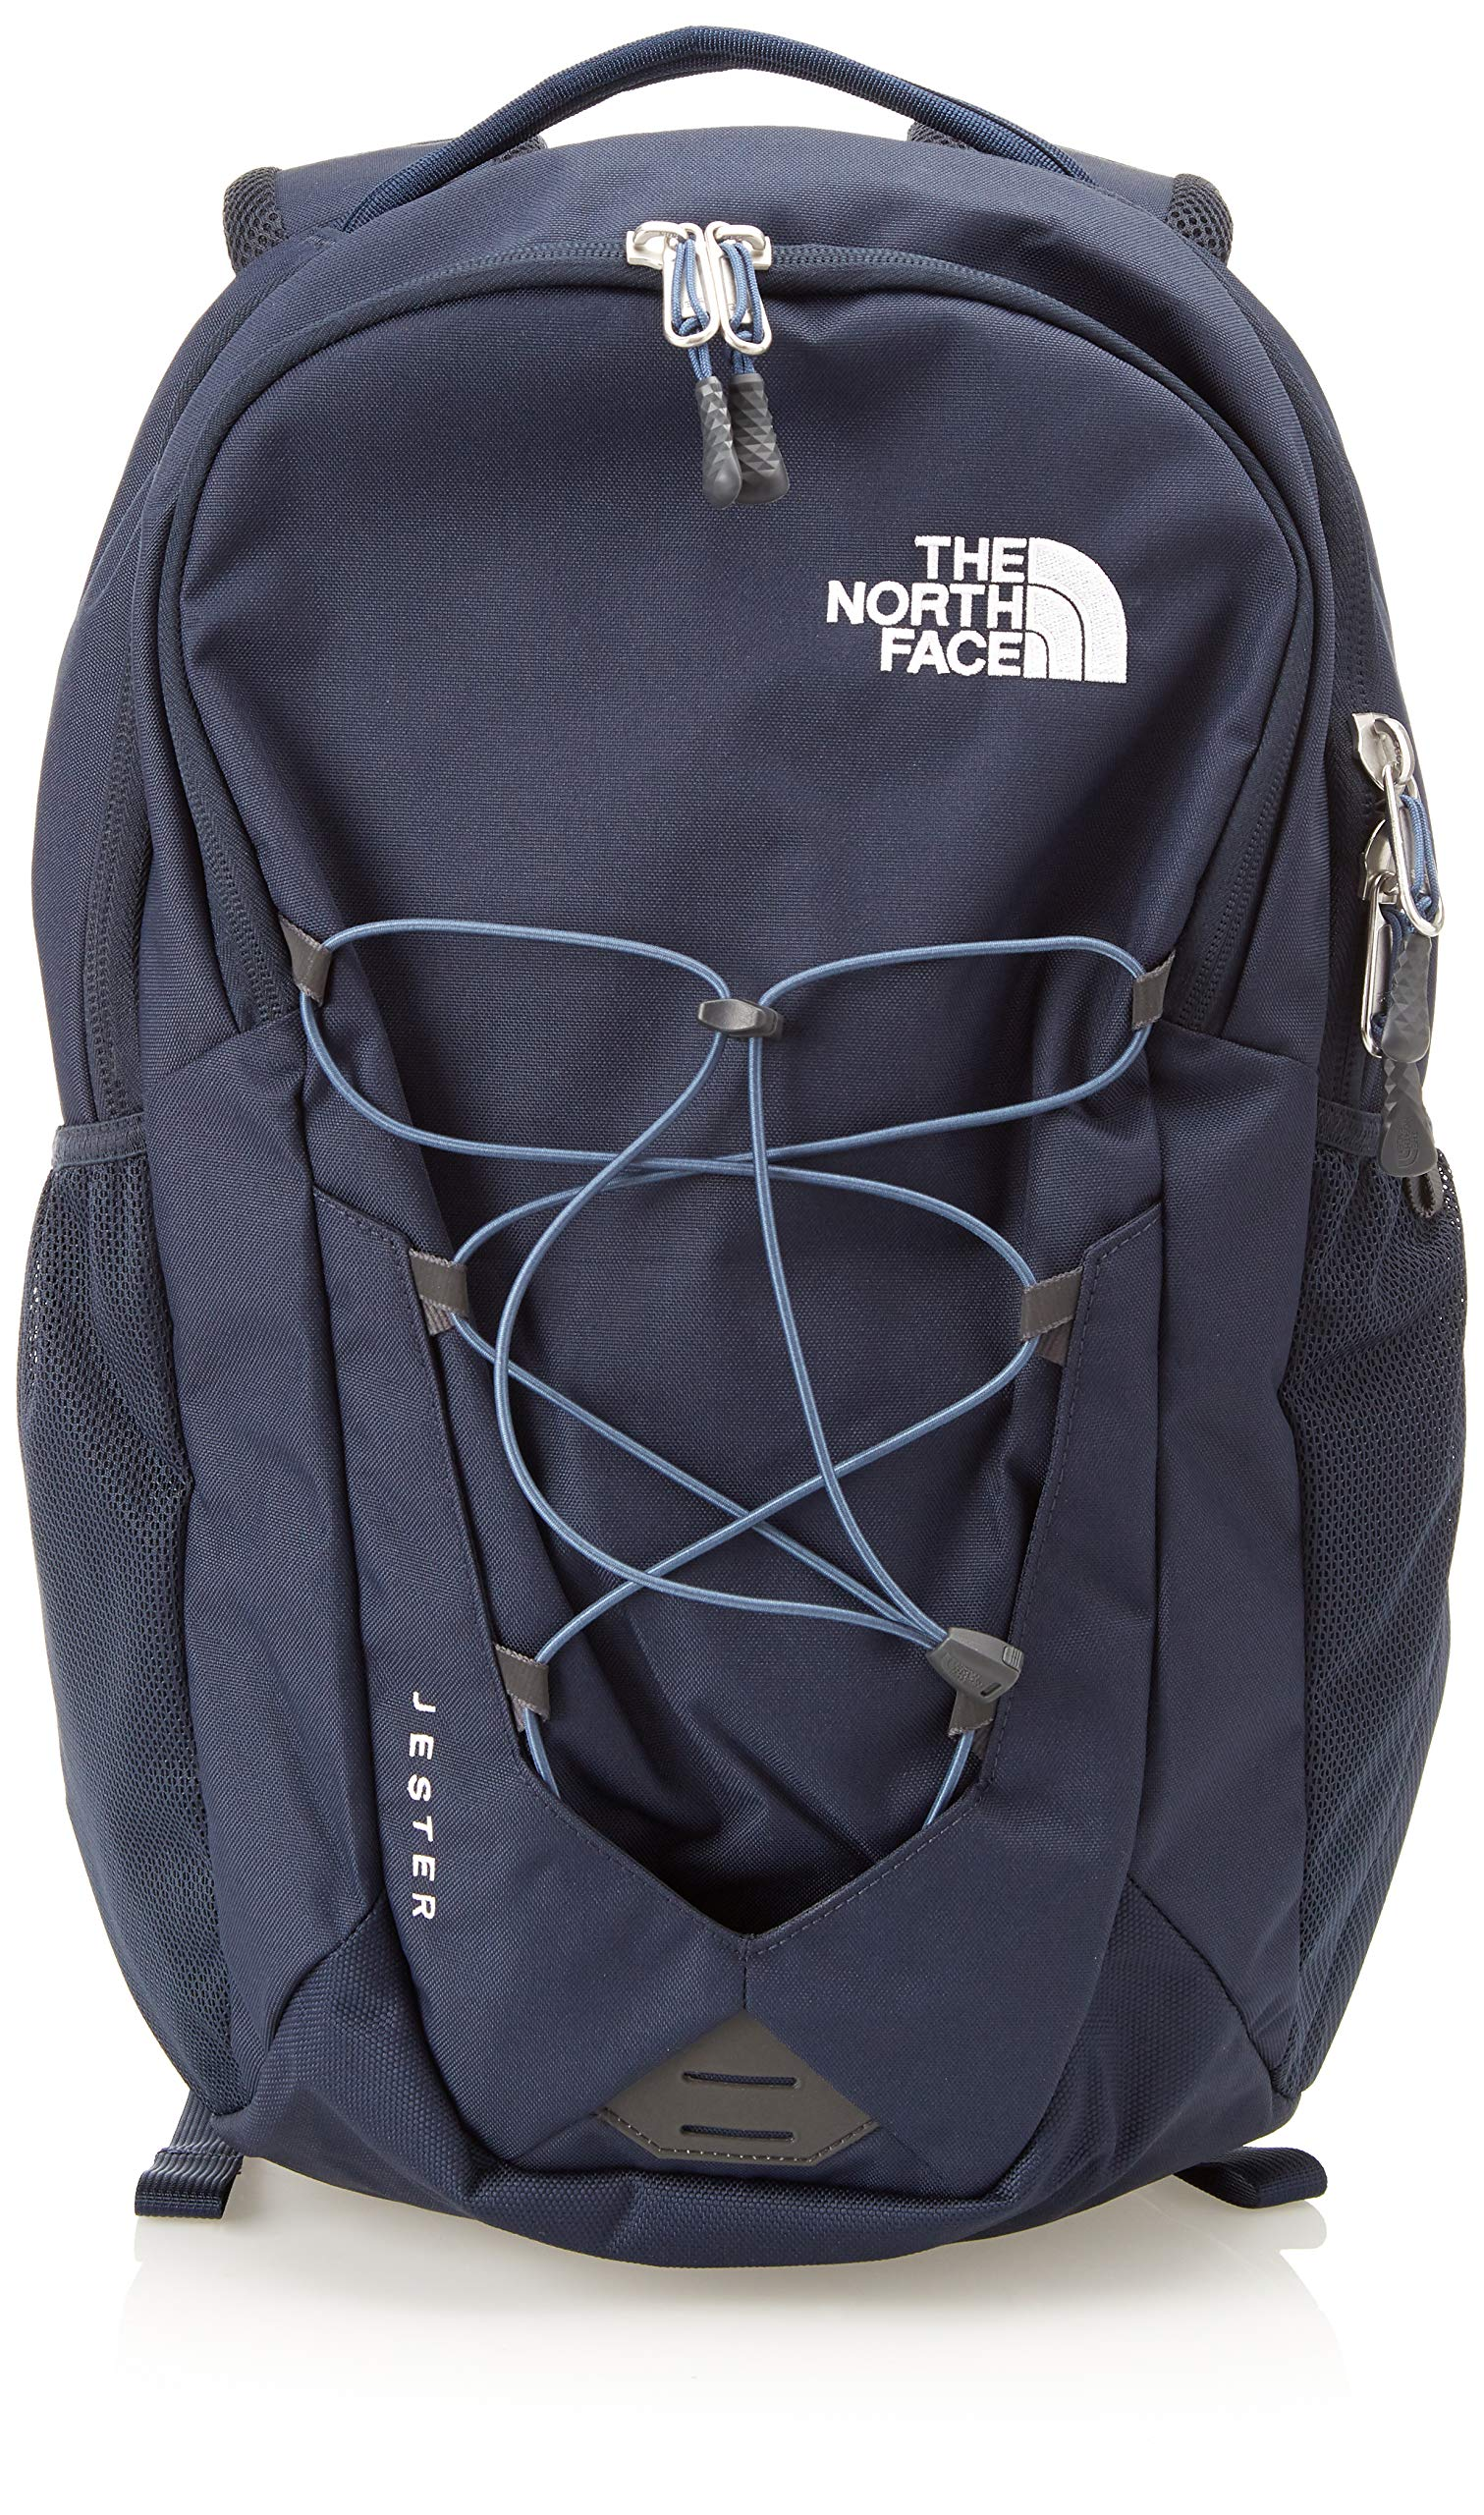 The North Face Jester Backpack, Shady Blue/Urban Navy by The North Face